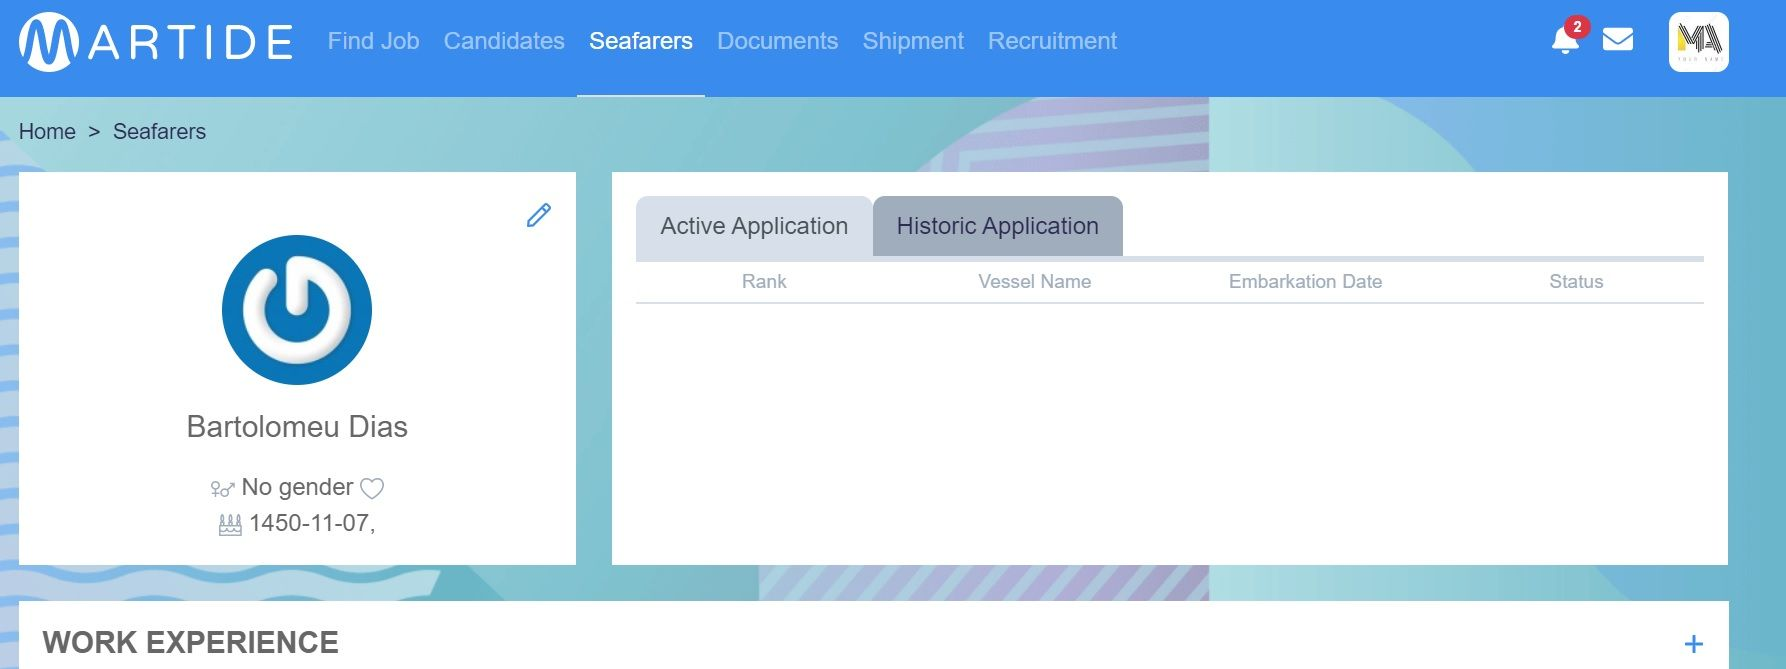 Screenshot of Martide website showing the new seafarer's blank profile